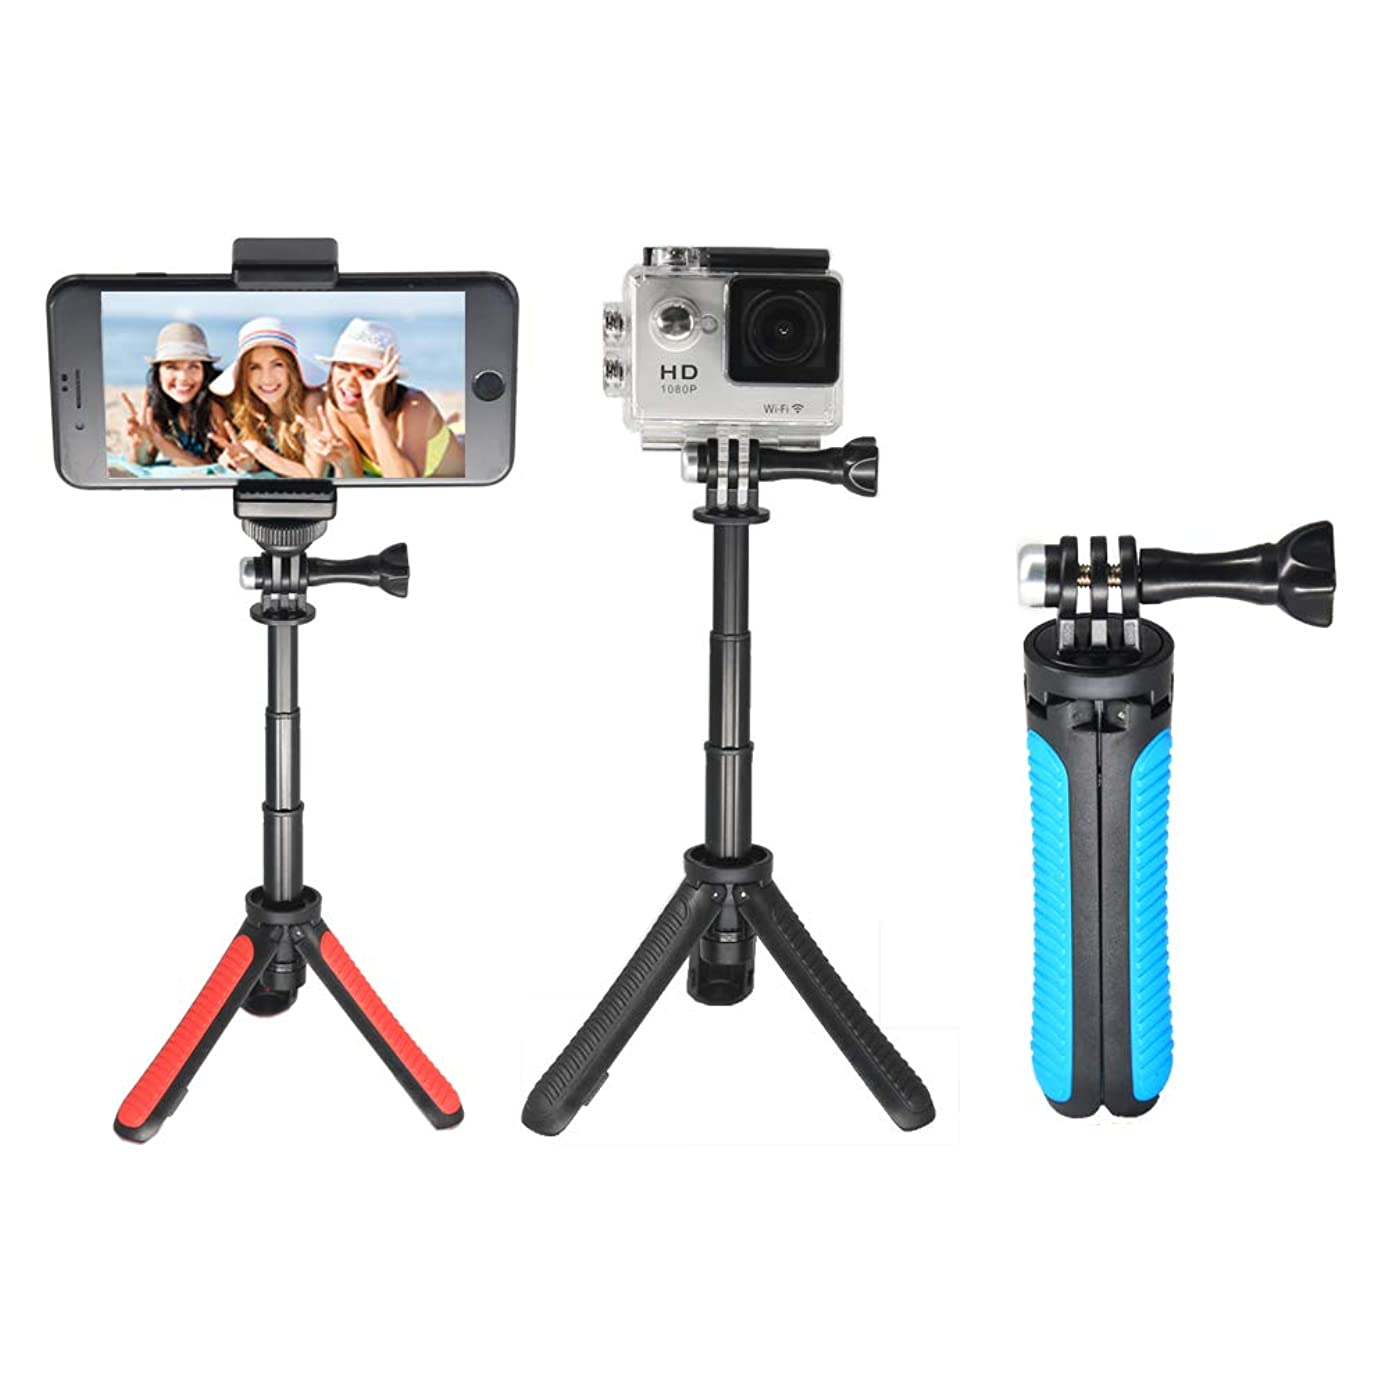 OCTO MOUNTS | Lightweight Mini Telescopic Extension Pole with Tripod or Hand-Held Monopod for Smartphone or GoPro. iPhone, Samsung Galaxy, Android, DSLR, Point and Shoot Camera (Red)